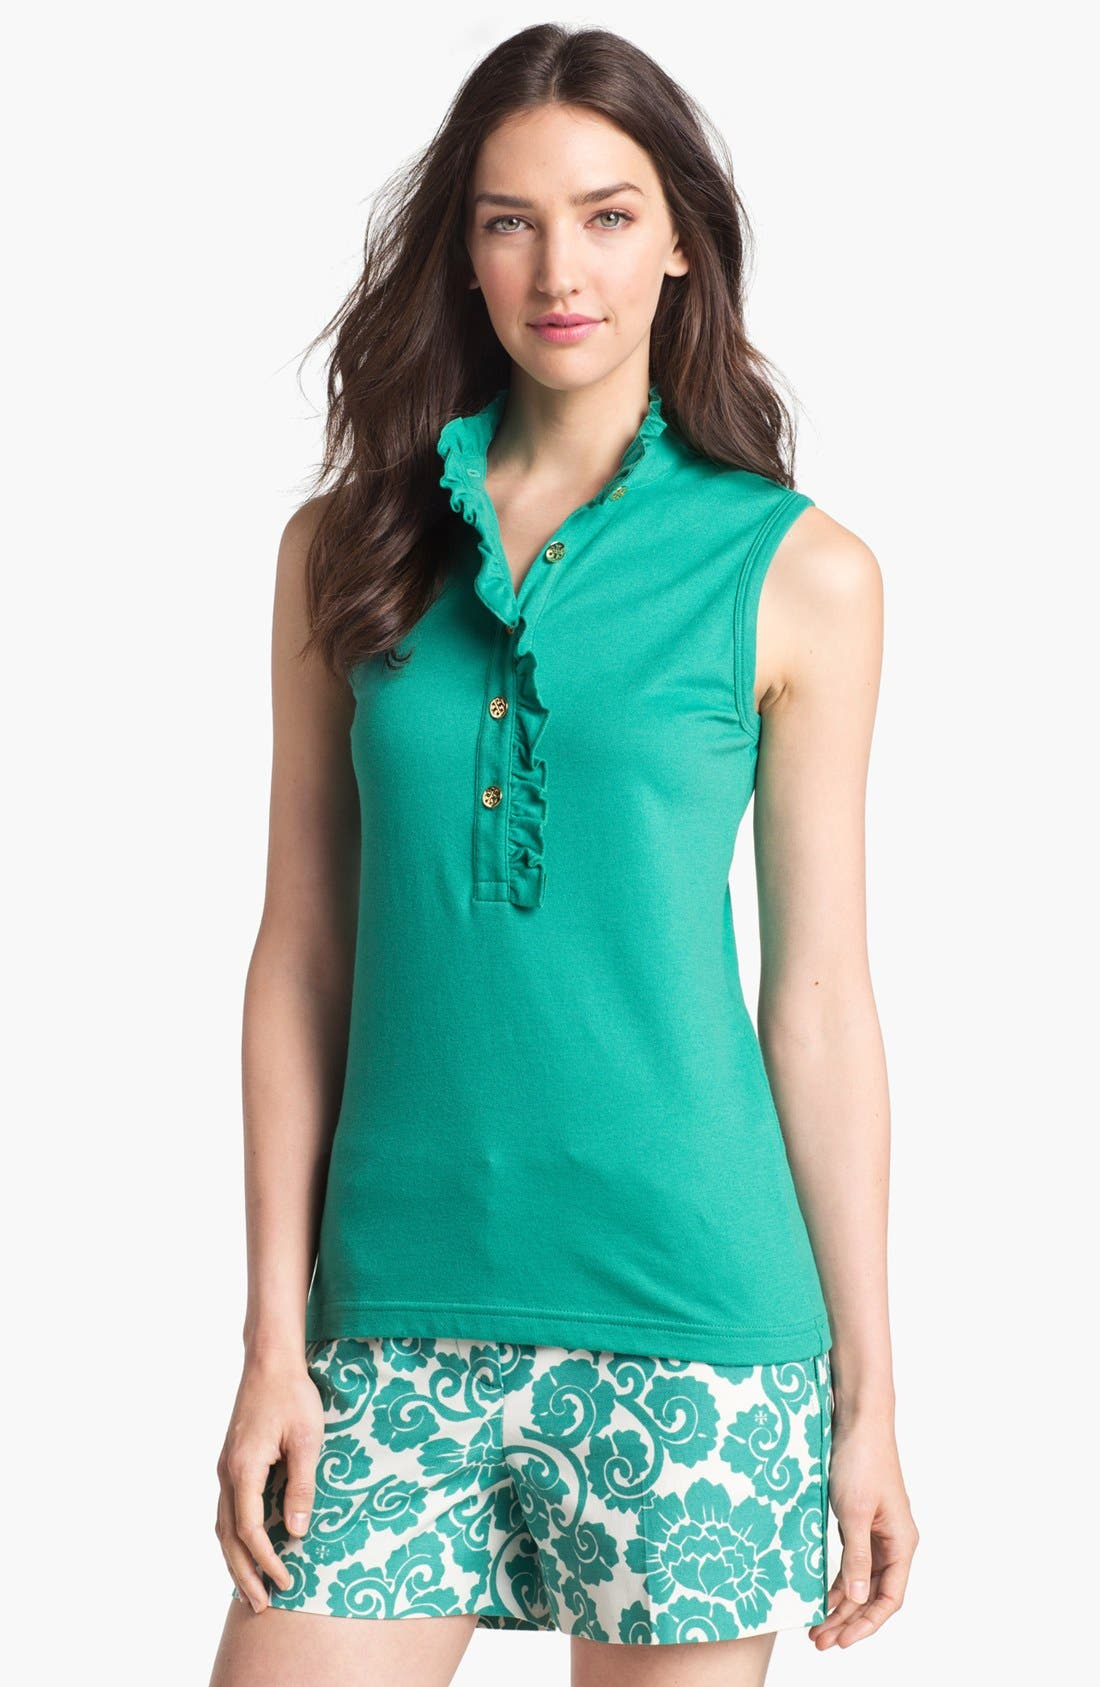 Alternate Image 1 Selected - Tory Burch 'Lidia' Sleeveless Polo